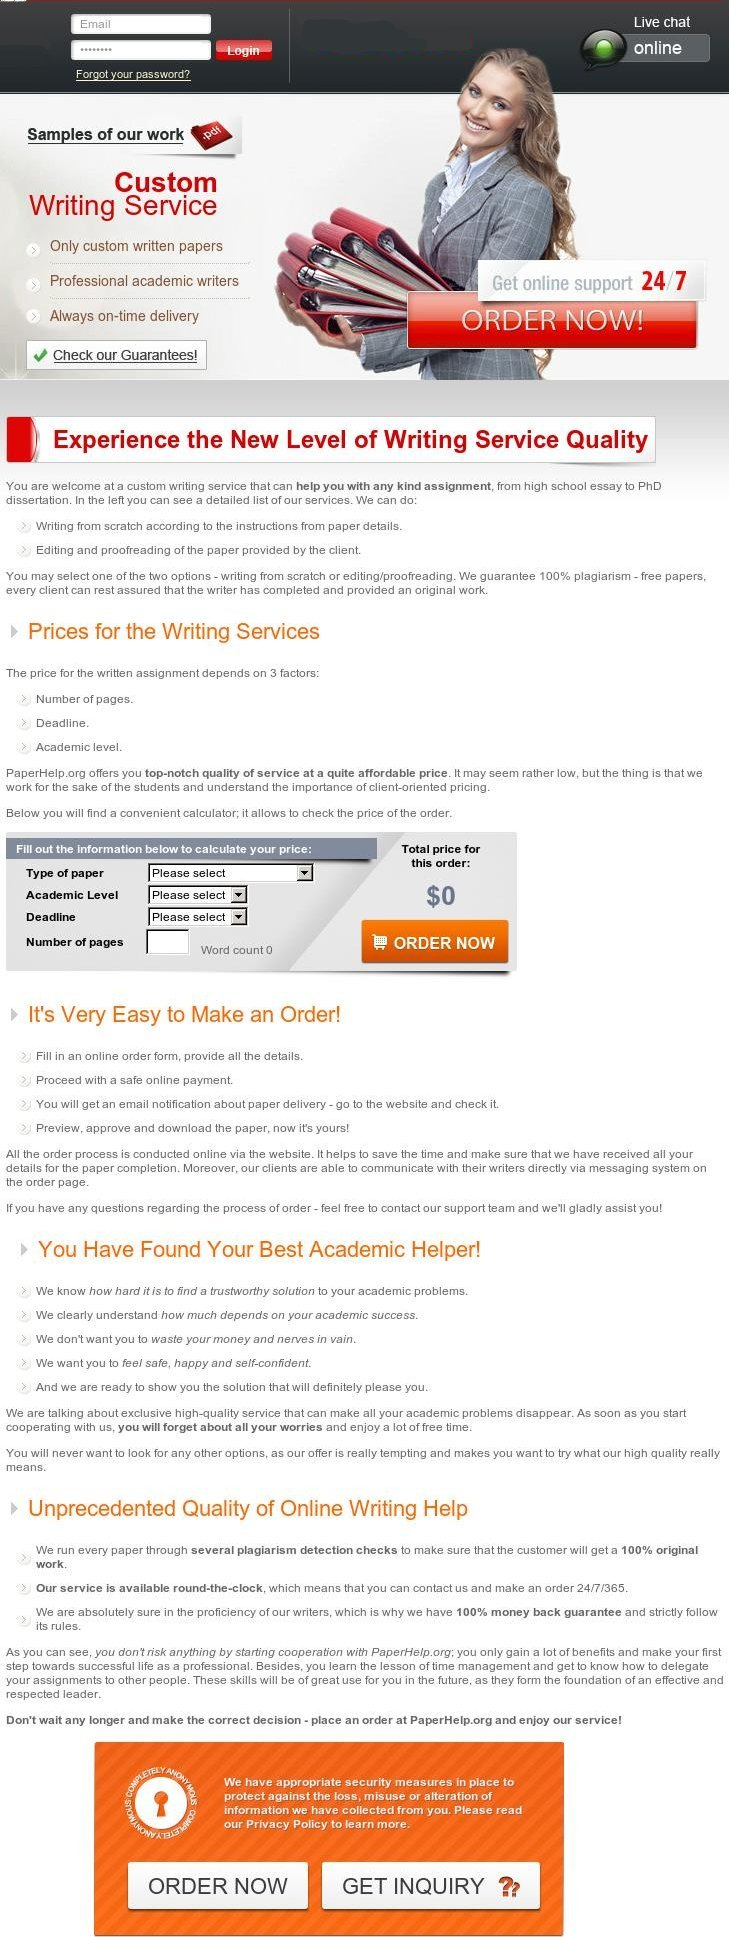 buy essays online secure page com well wise students do not risk their grades and money they have spent on the semester fees and turn towards professional uk essay help as the maxim goes